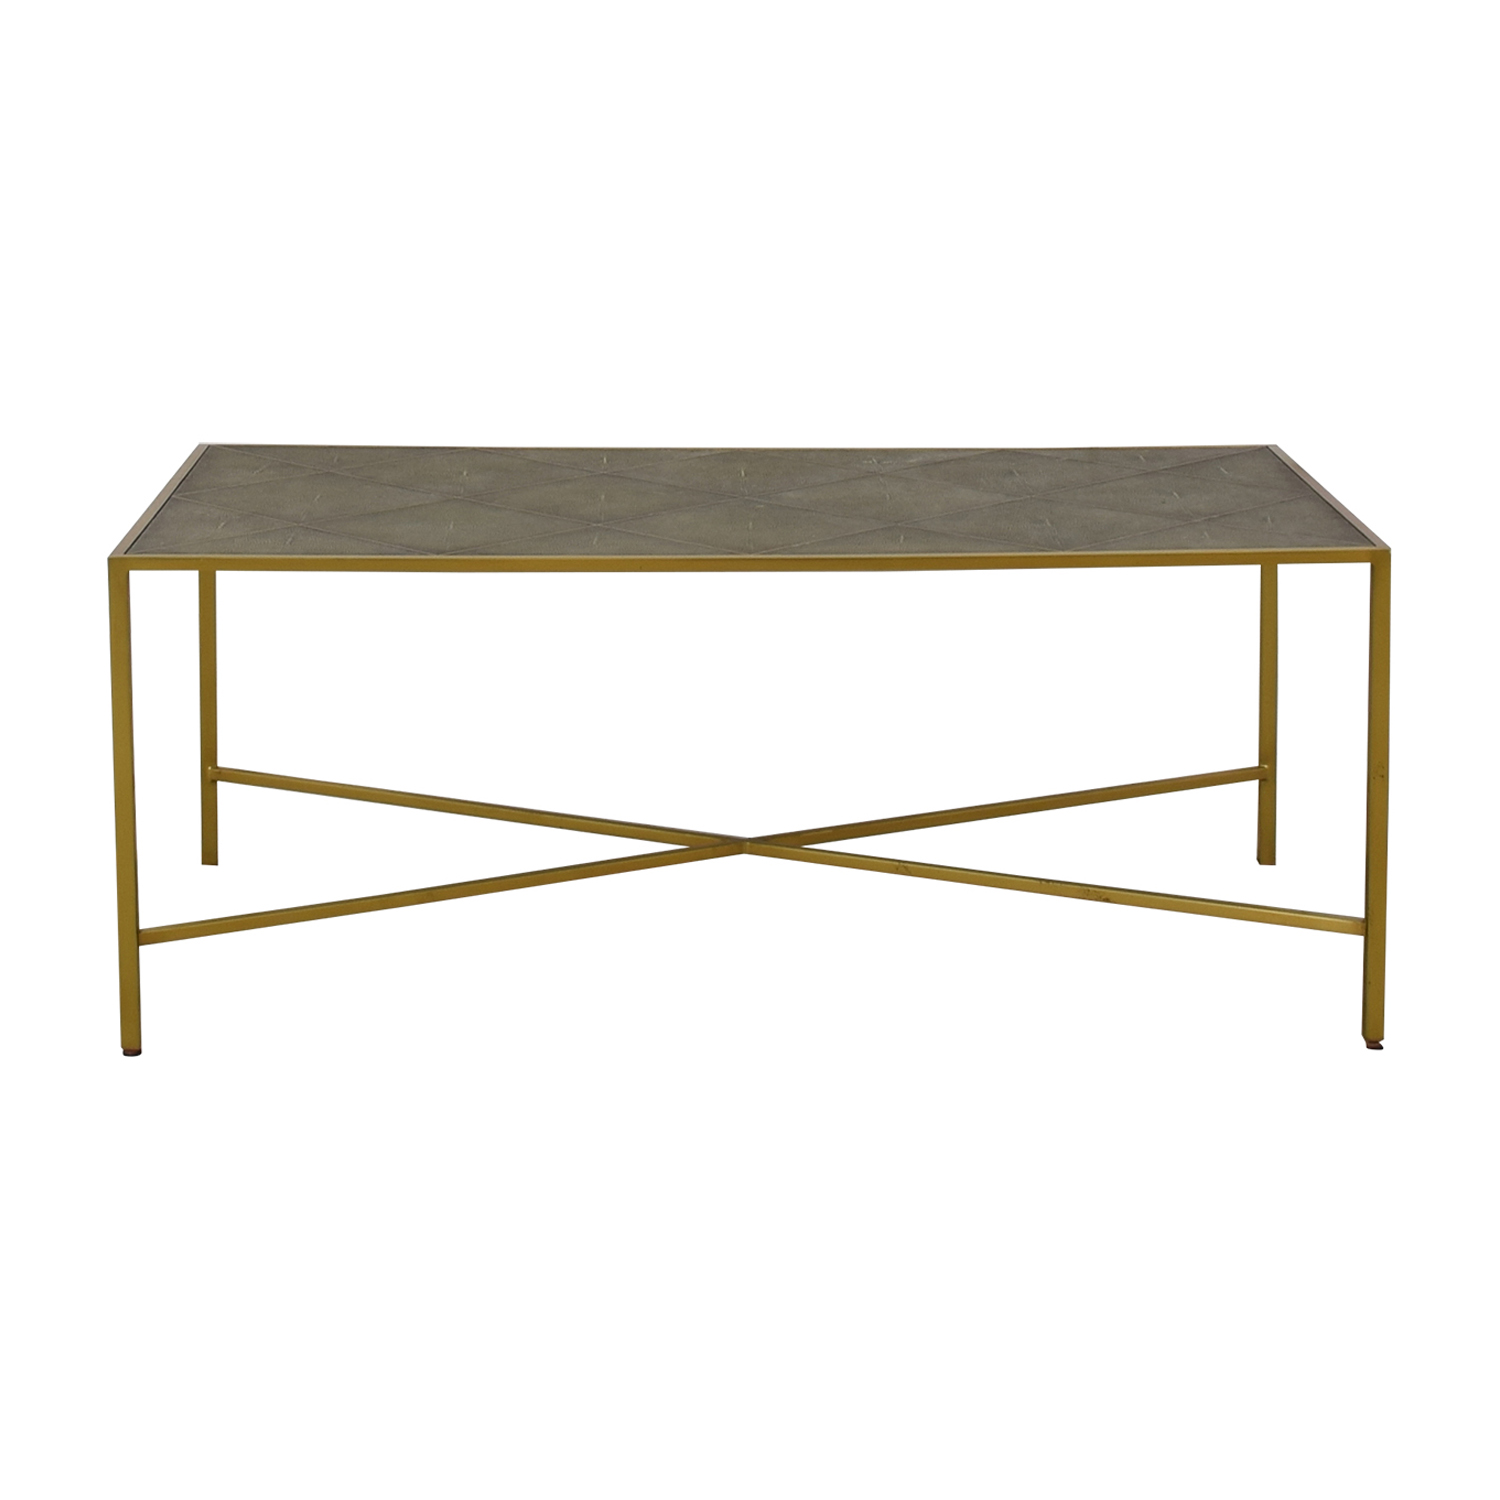 Superieur 79% OFF   One Kings Lane One Kings Lane Theodore Alexander Shagreen Coffee  Table / Tables